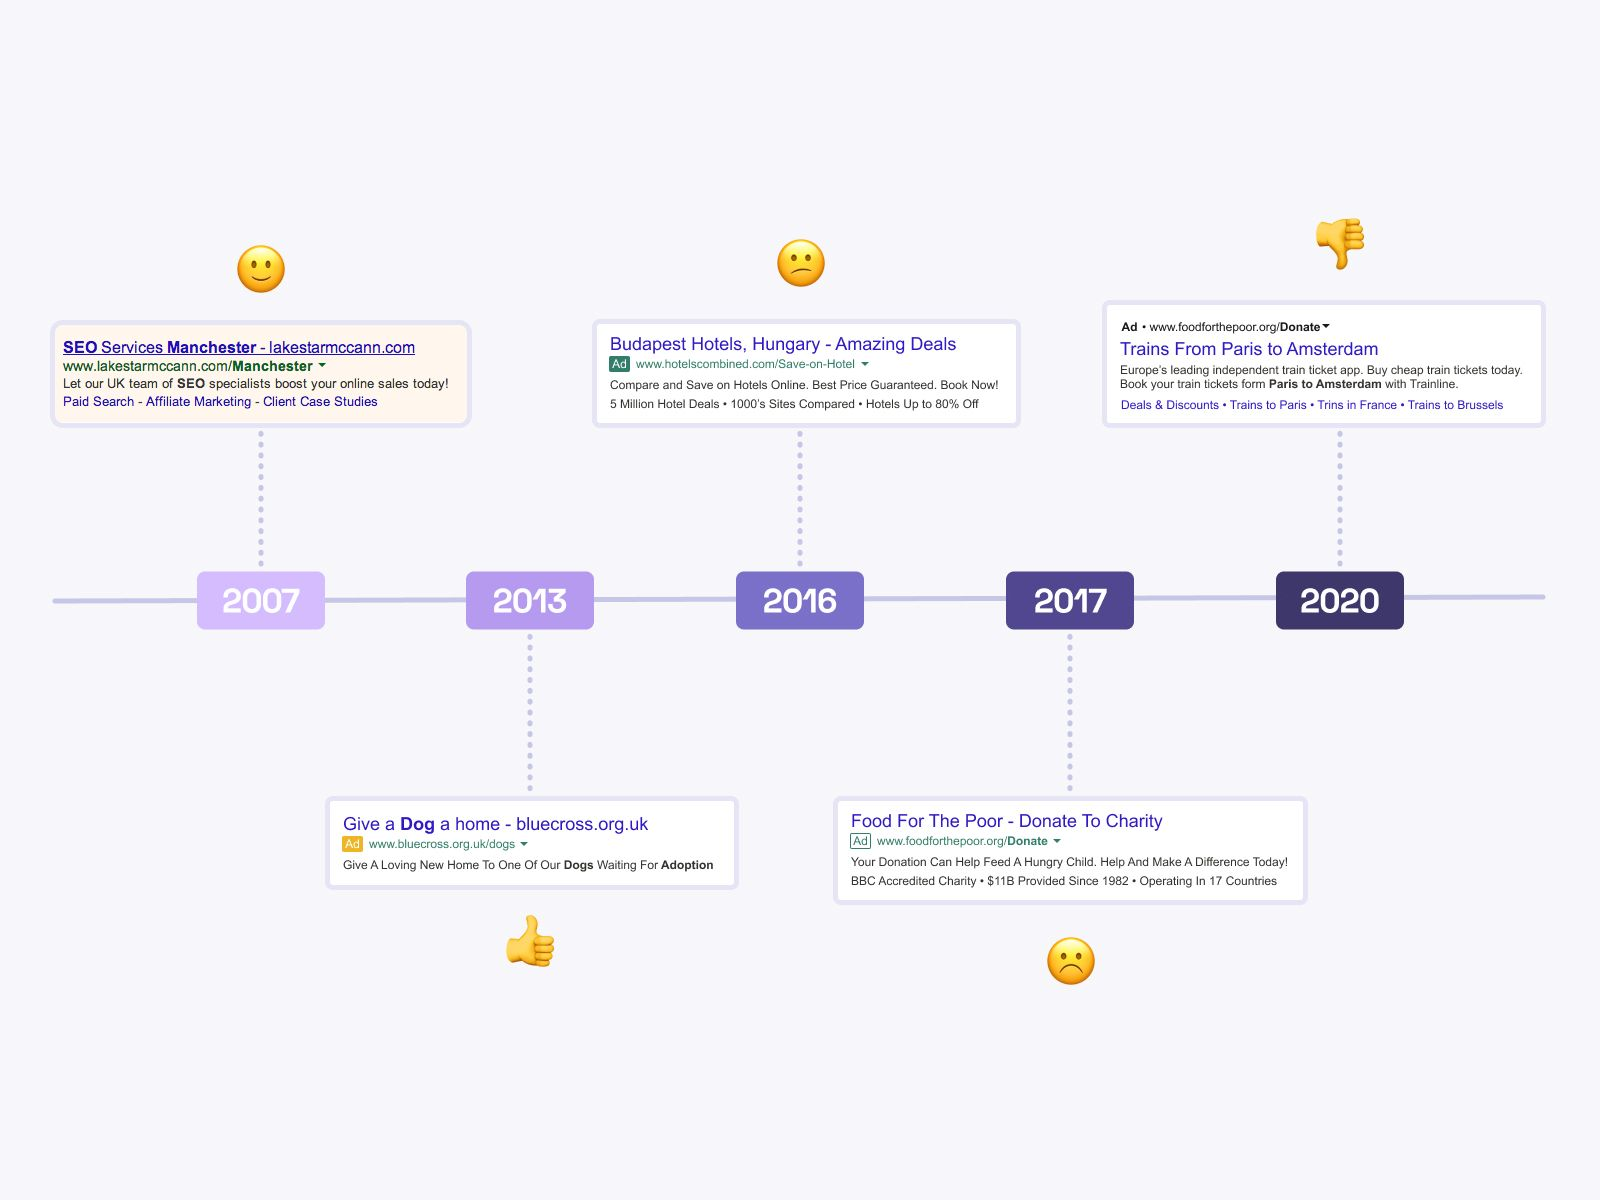 Image that represents Google ads section evolution since 2007 till 2020